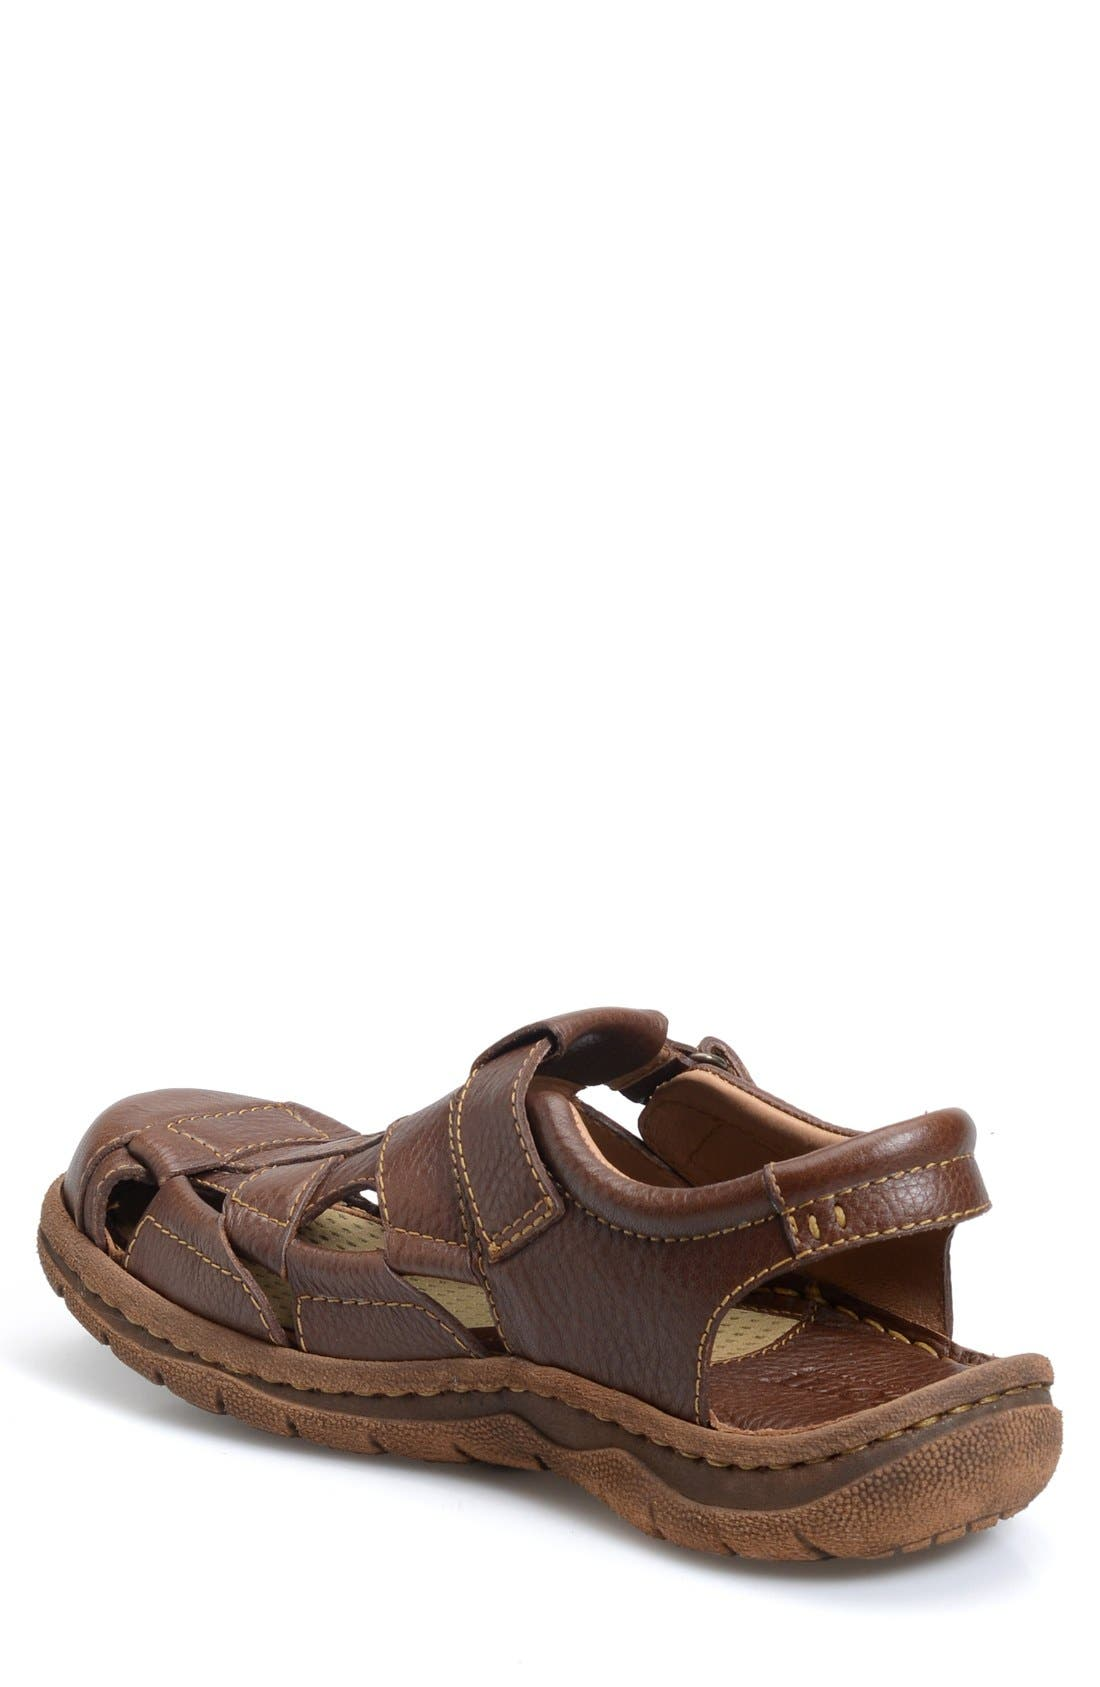 'Cabot II' Sandal,                             Alternate thumbnail 2, color,                             BROWN LEATHER